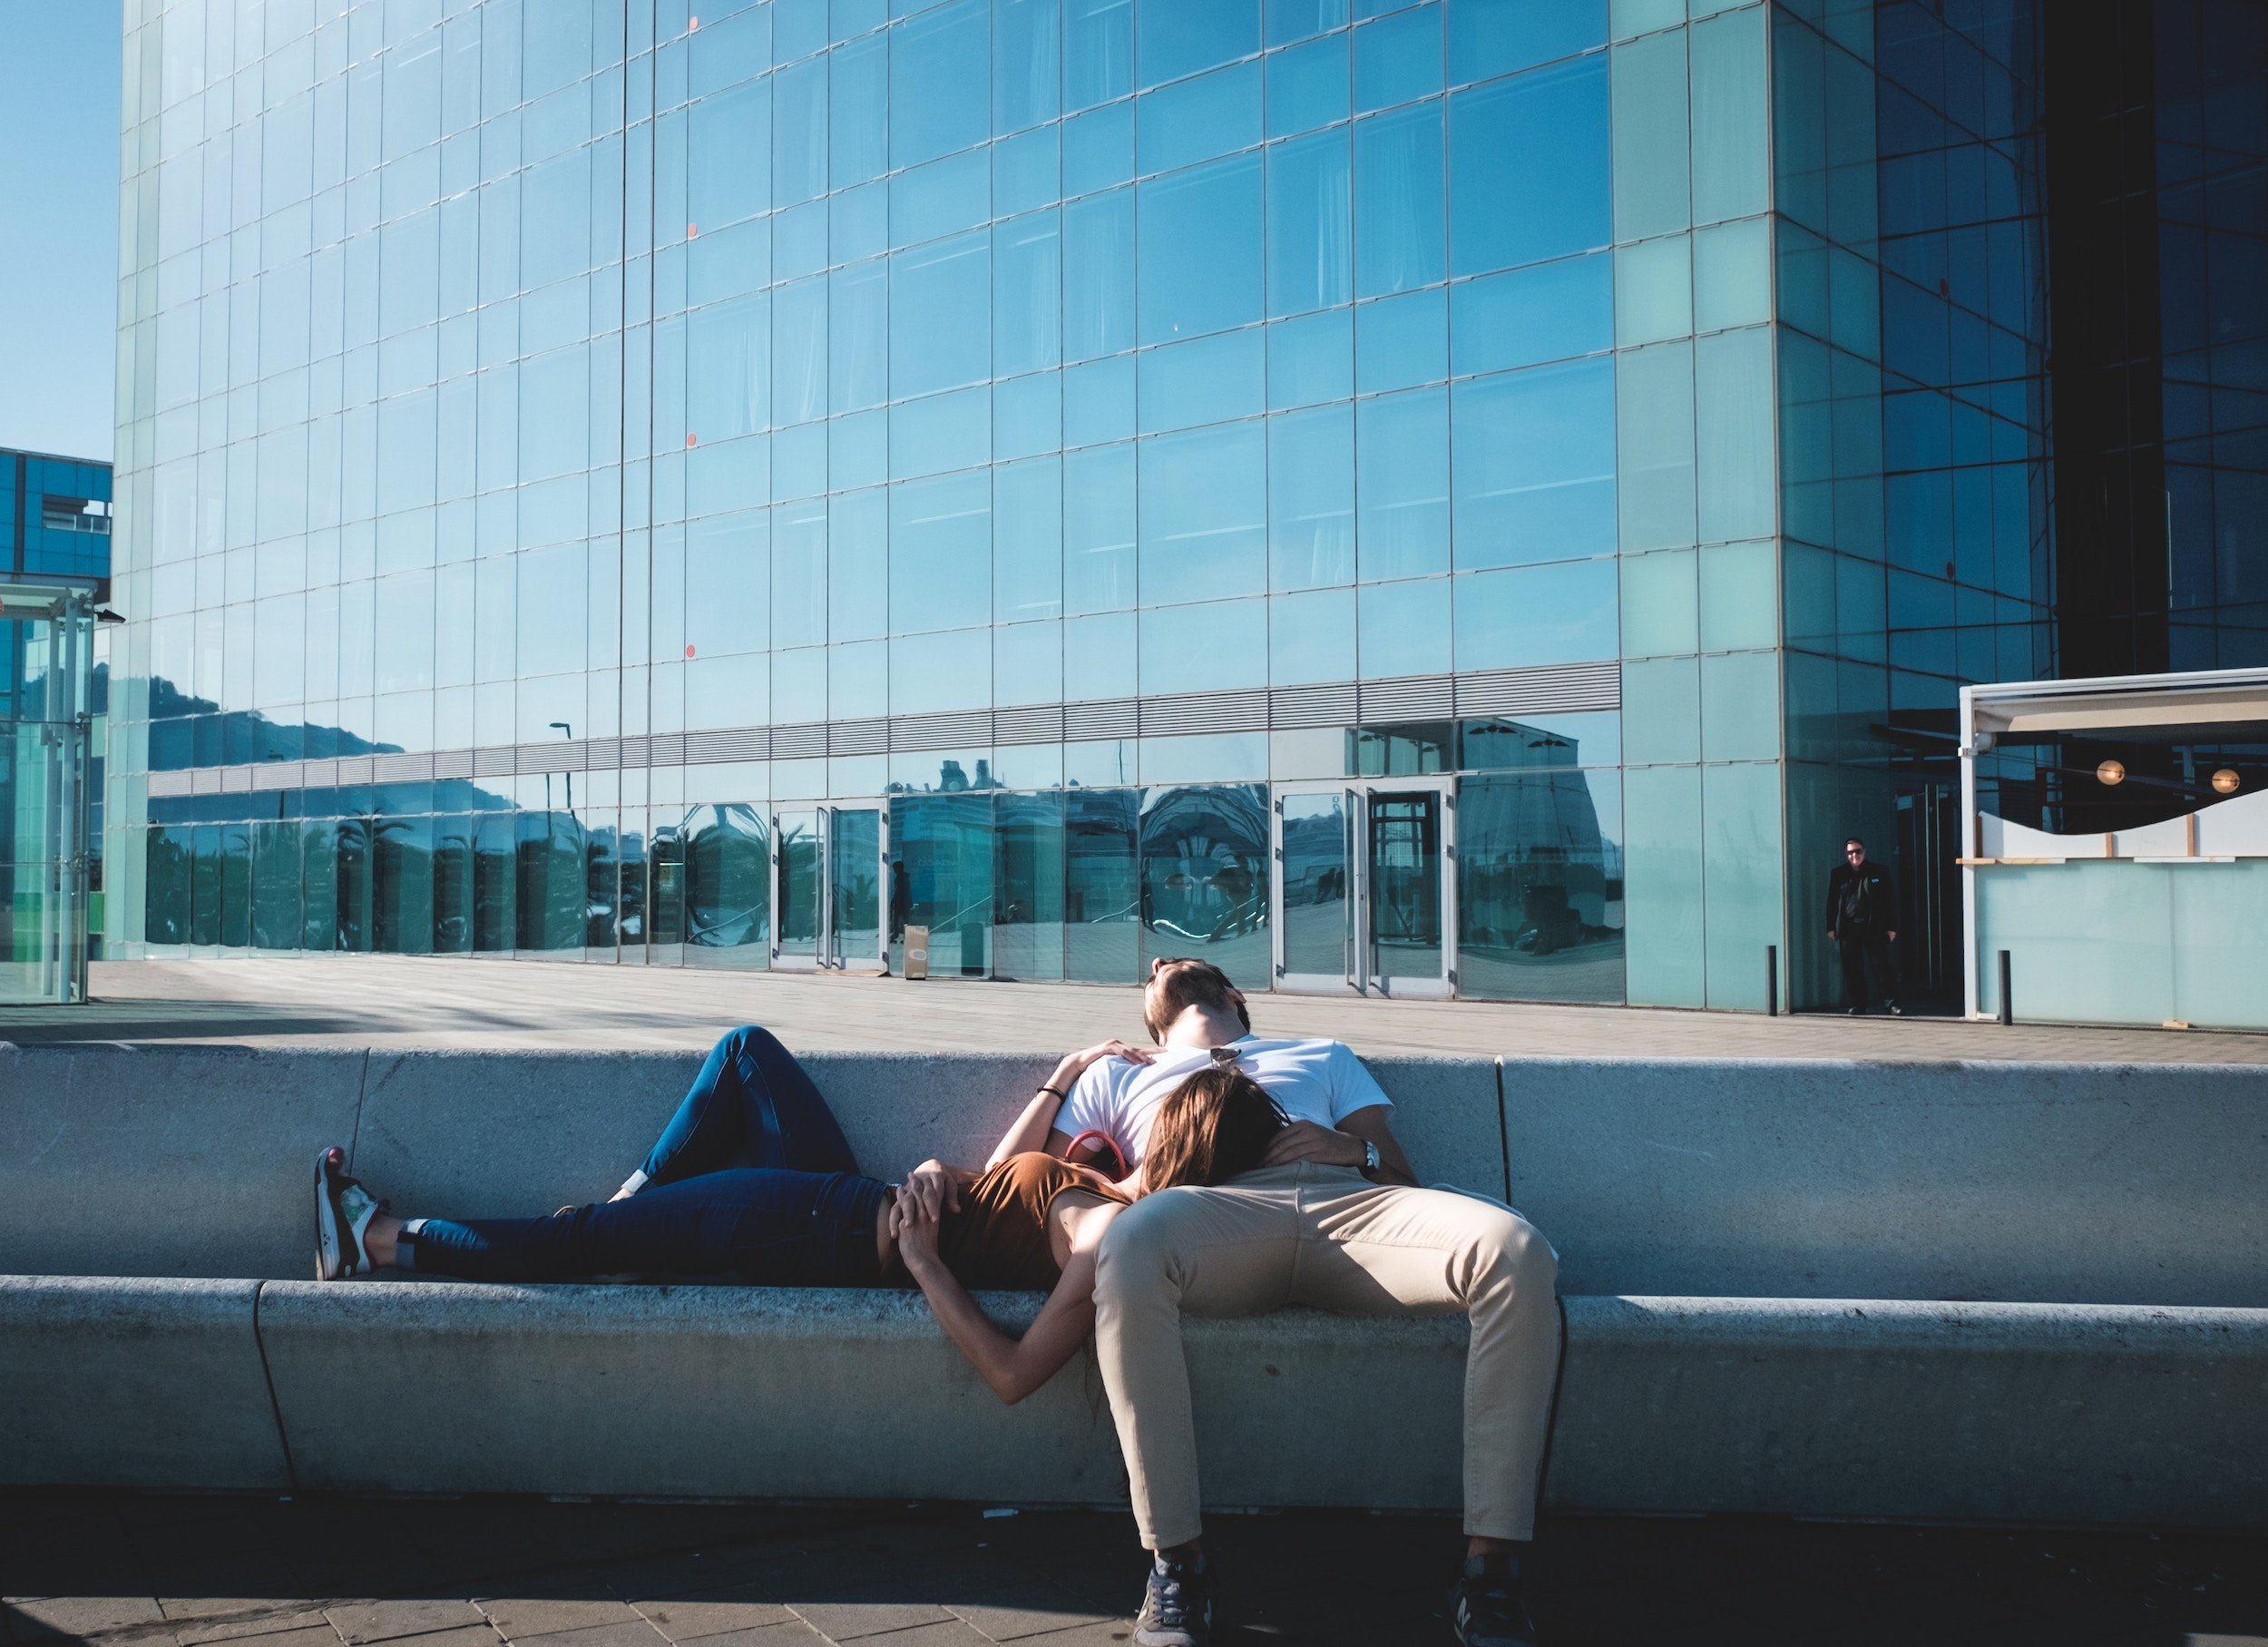 A couple taking it easy on the steps of a city building